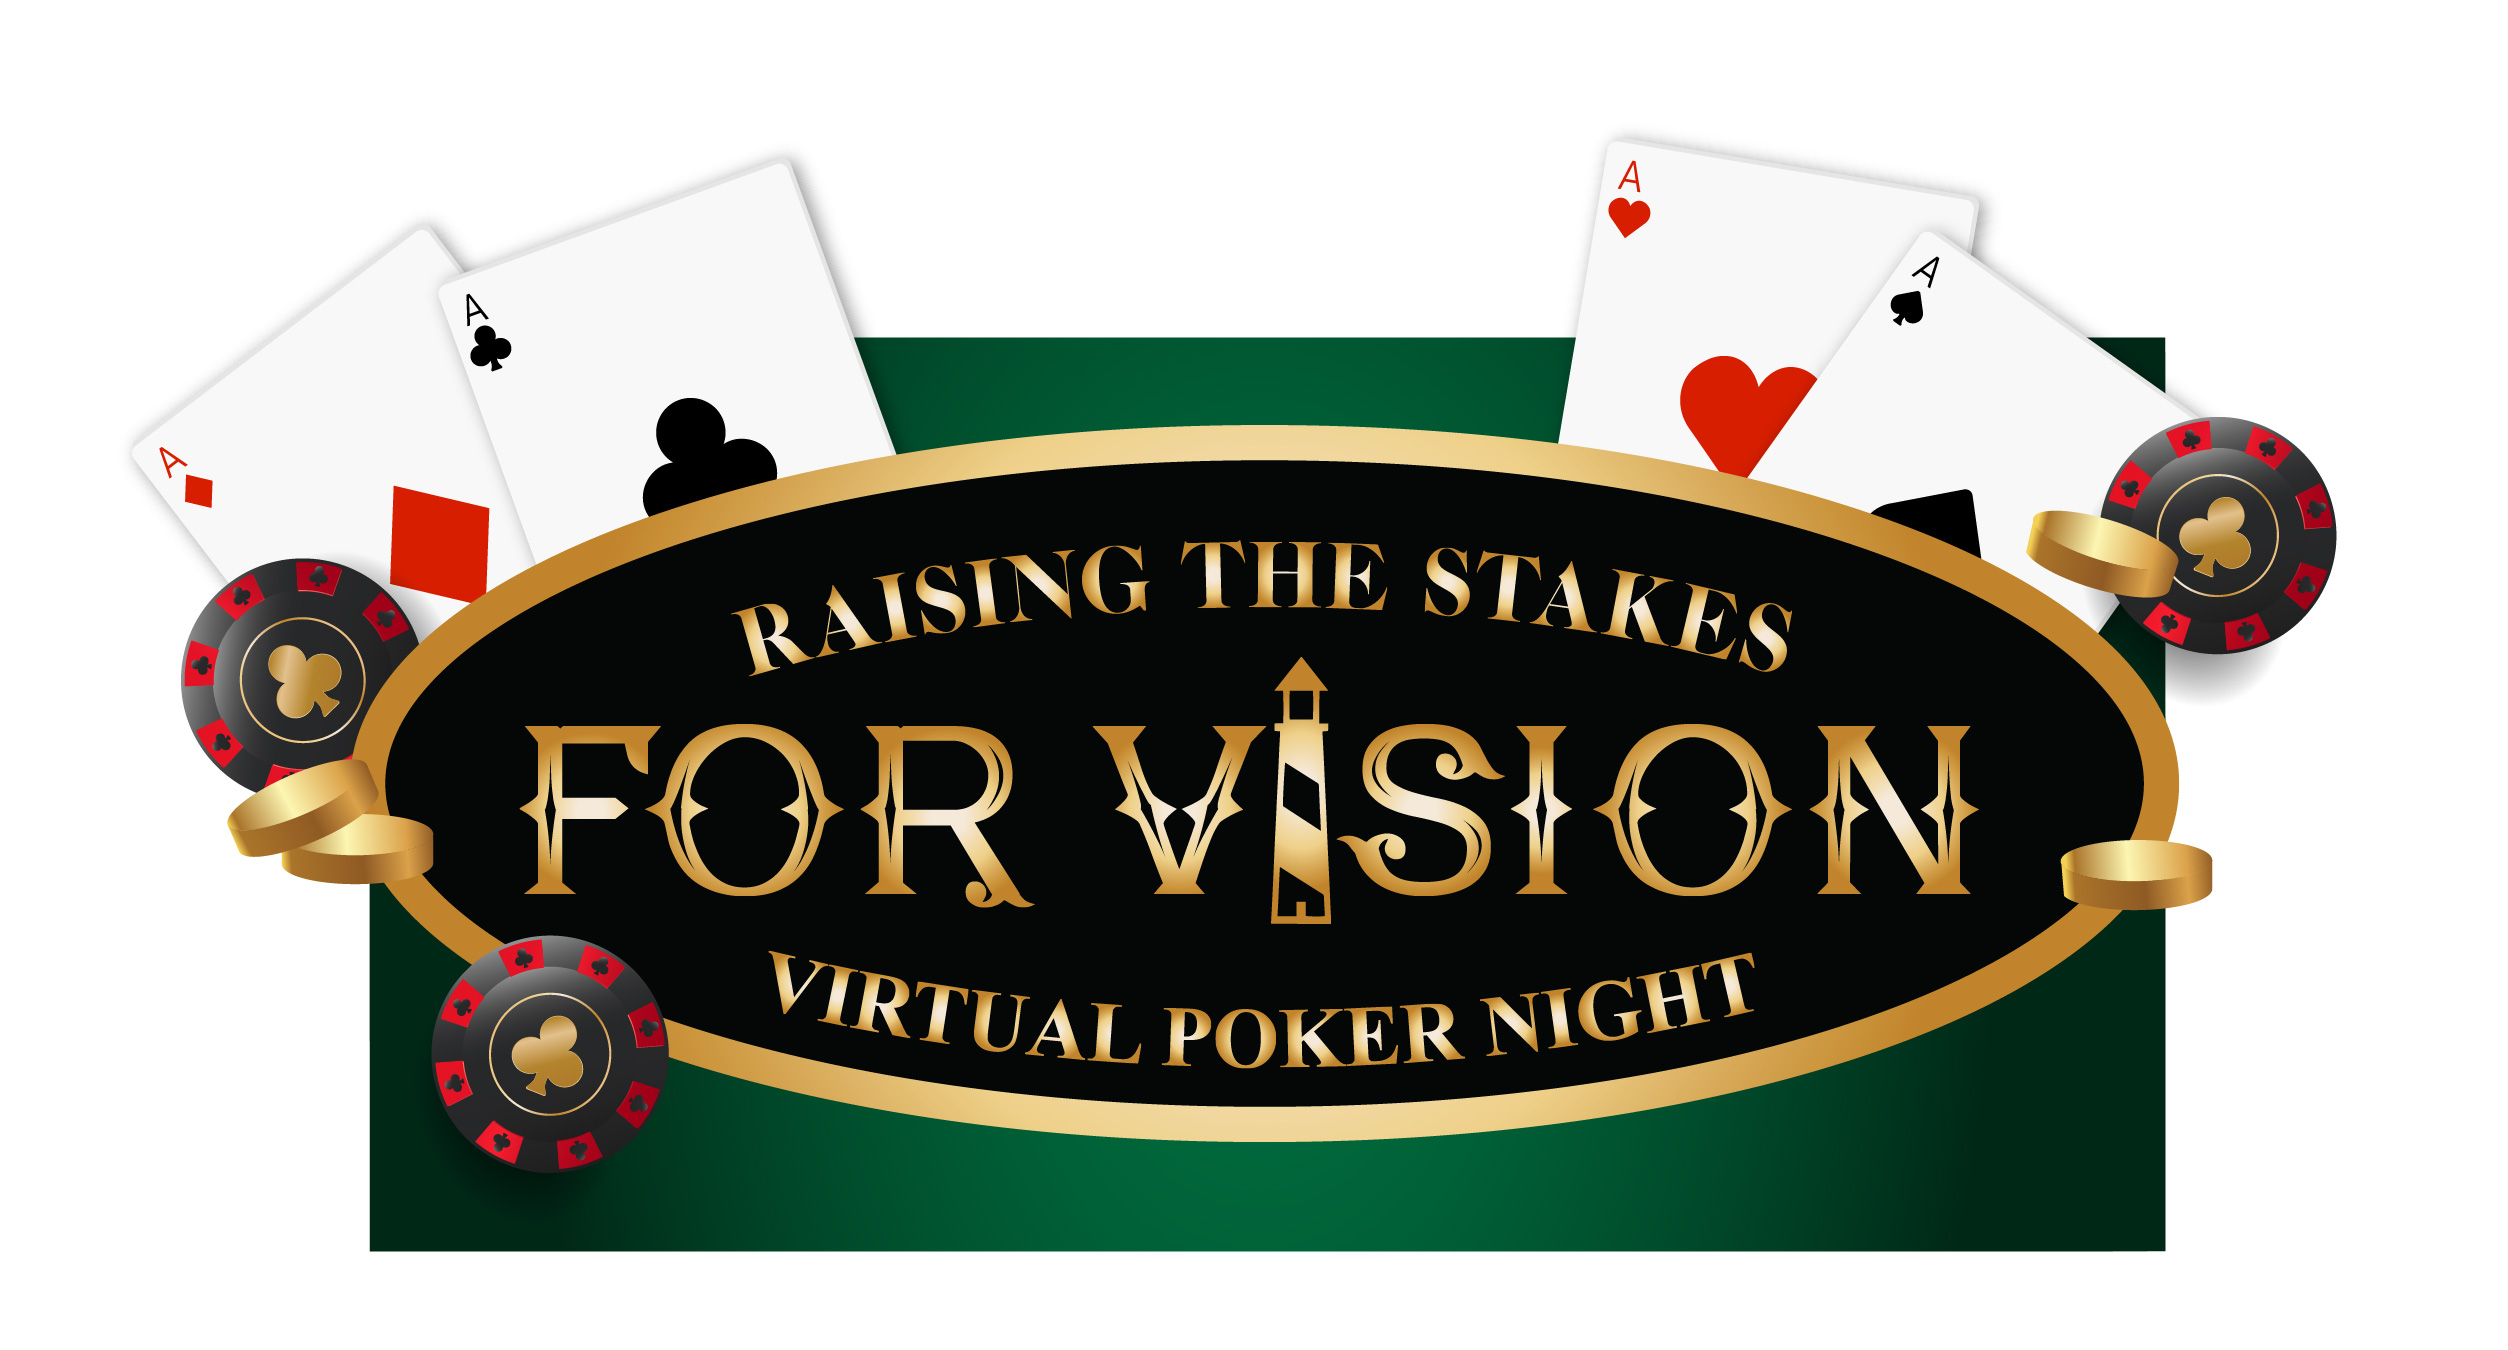 Raising the stakes for vision. virtual poker night. playing cards and poker chips behind the logo.